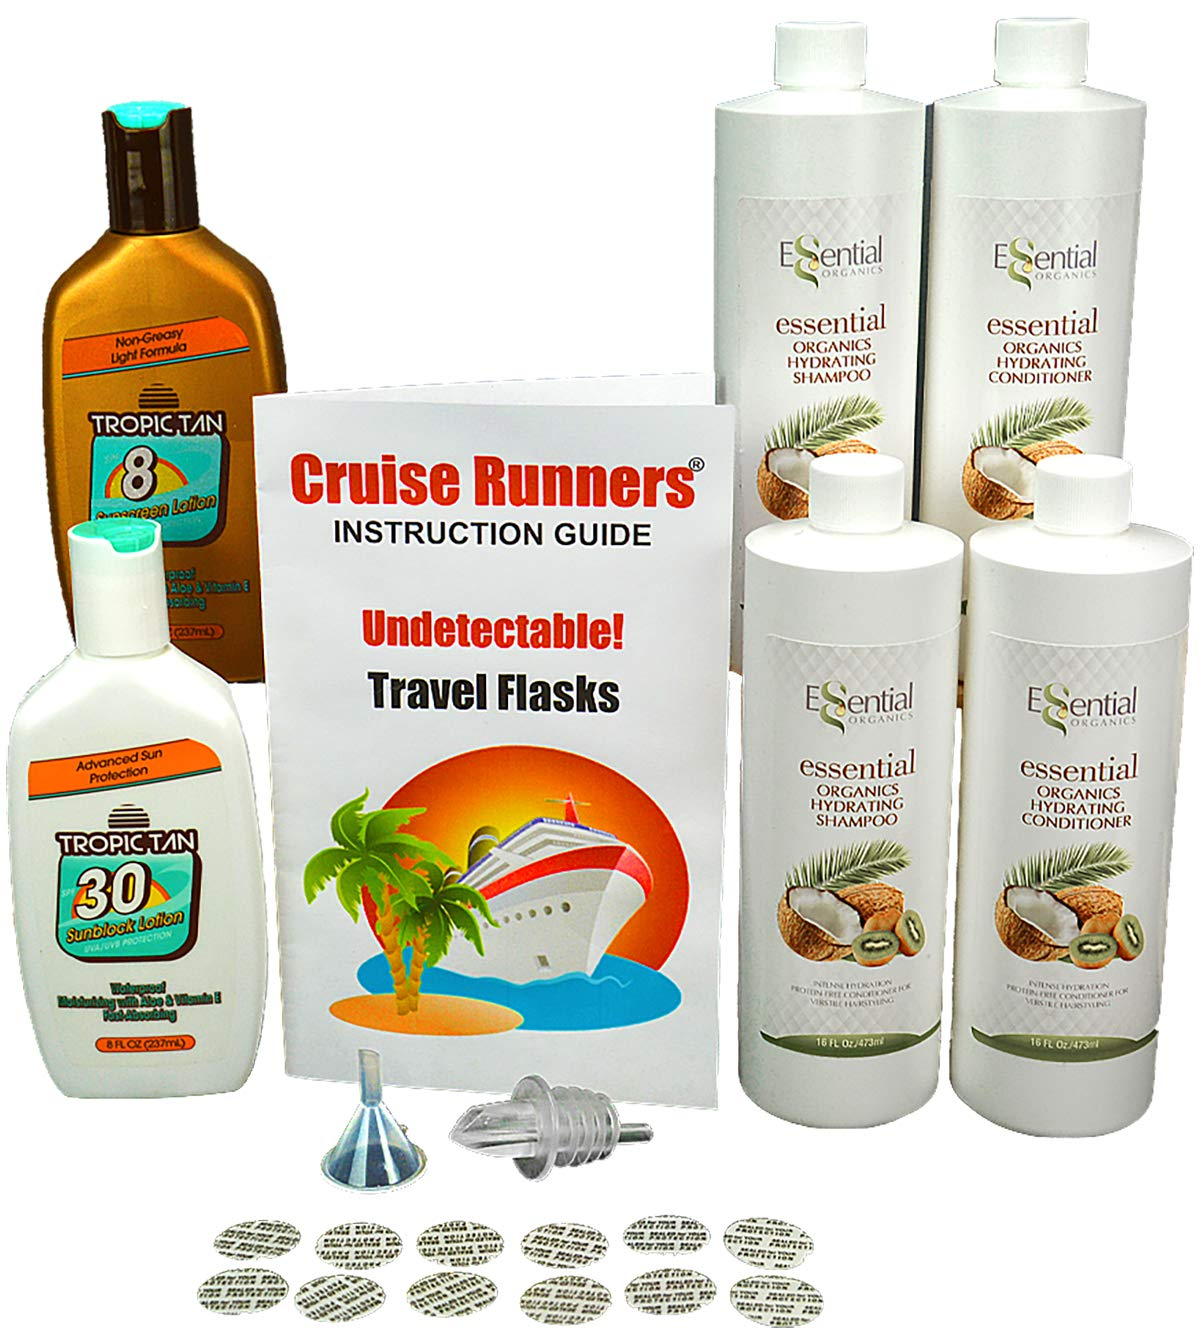 Fake Shampoo & Conditioner Sunscreen Bottle Flasks for Cruise Hide Liquor Enjoy Rum Runners Booze by CRUISE RUNNERS® Sneak Alcohol Smuggle Flask Kit on Cruises by Cruise Runners